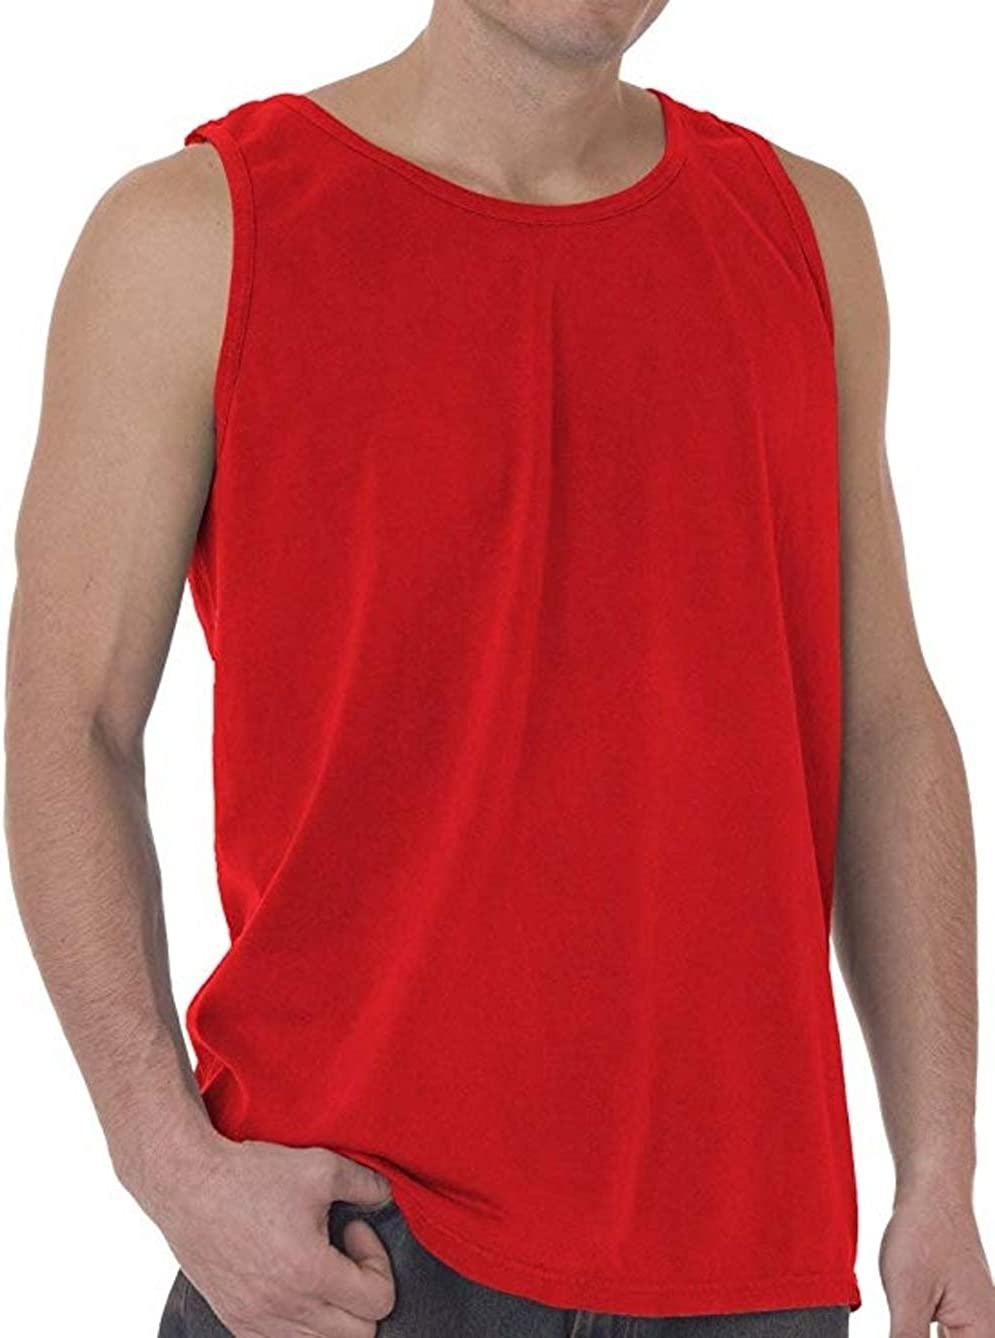 Big and Tall Sizes Tank Tops 7 Colors up to 8X